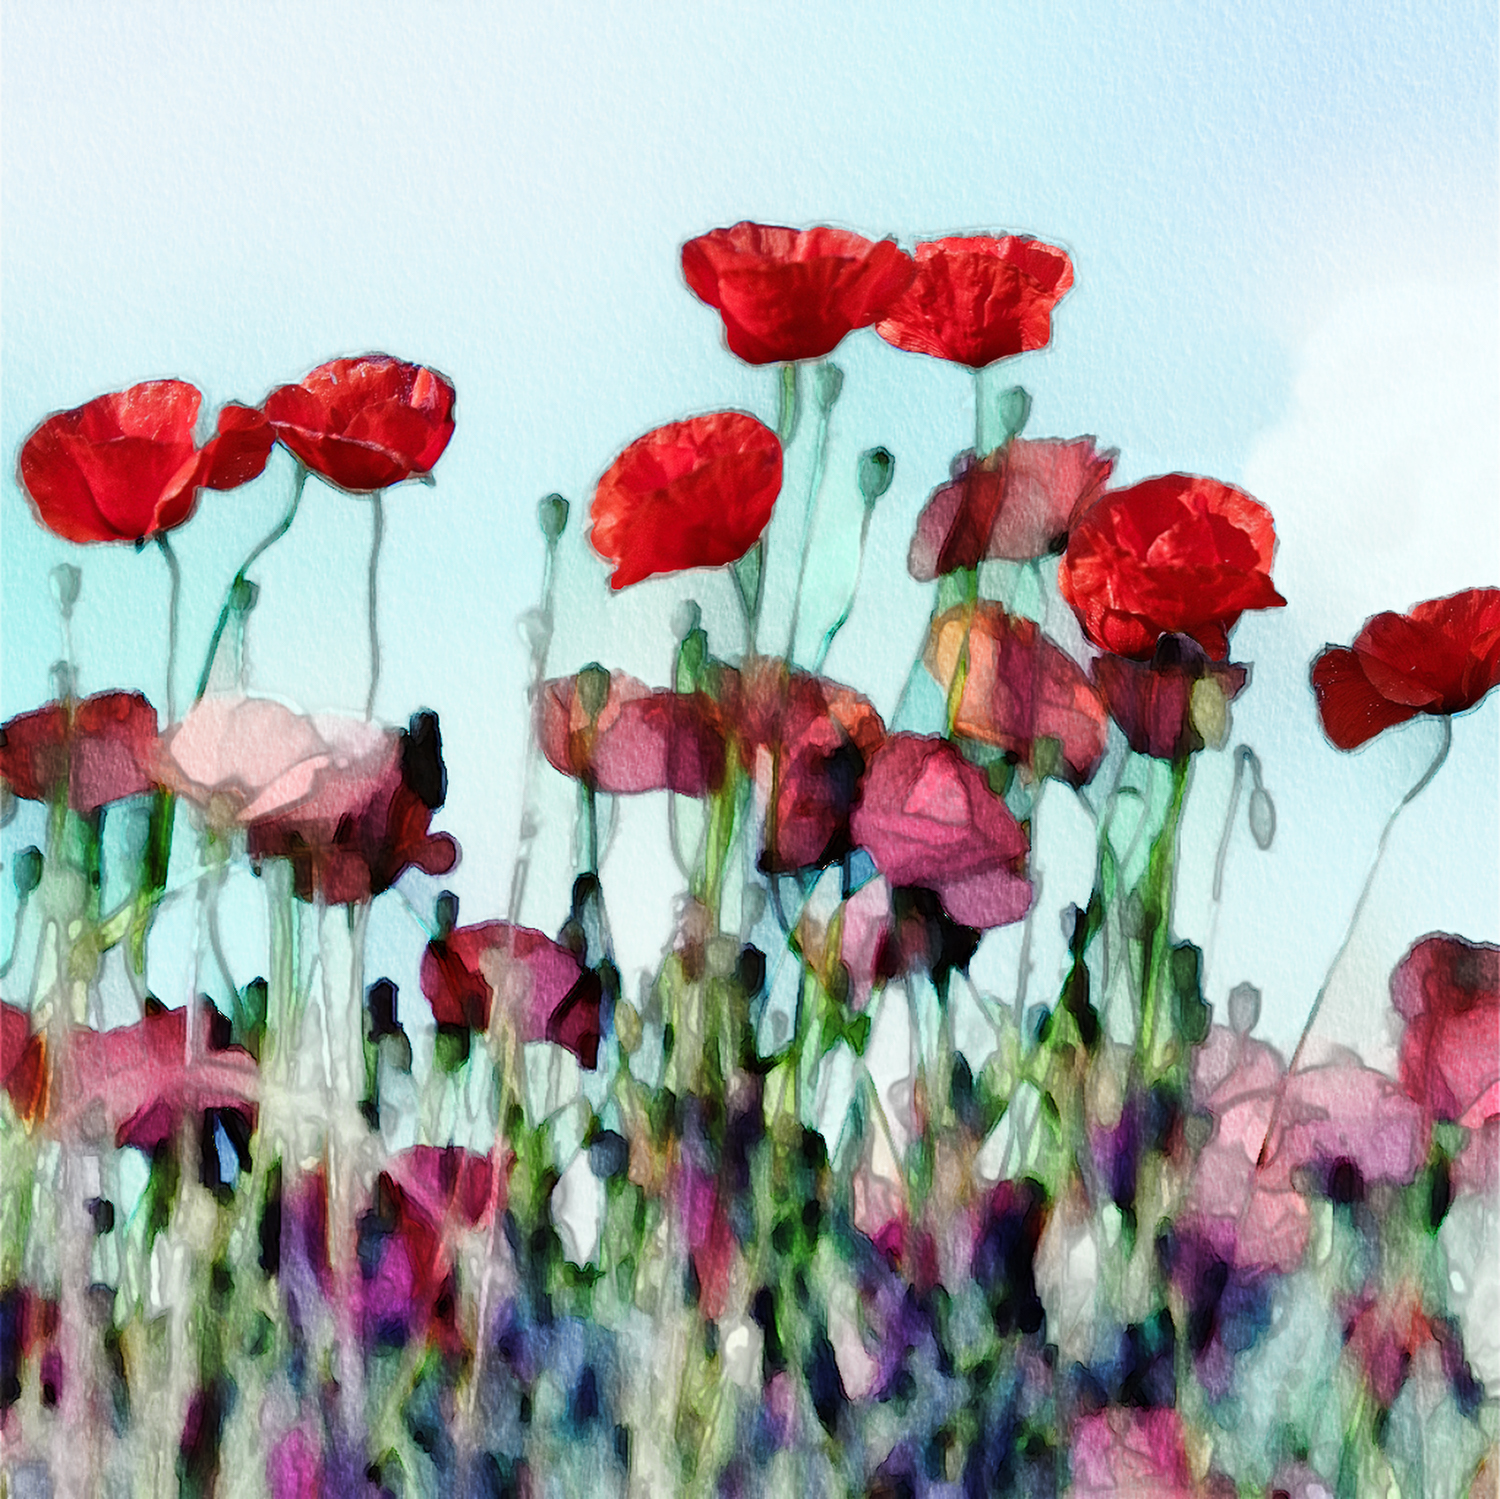 05 may 28 2018_Remembrance 1.jpg